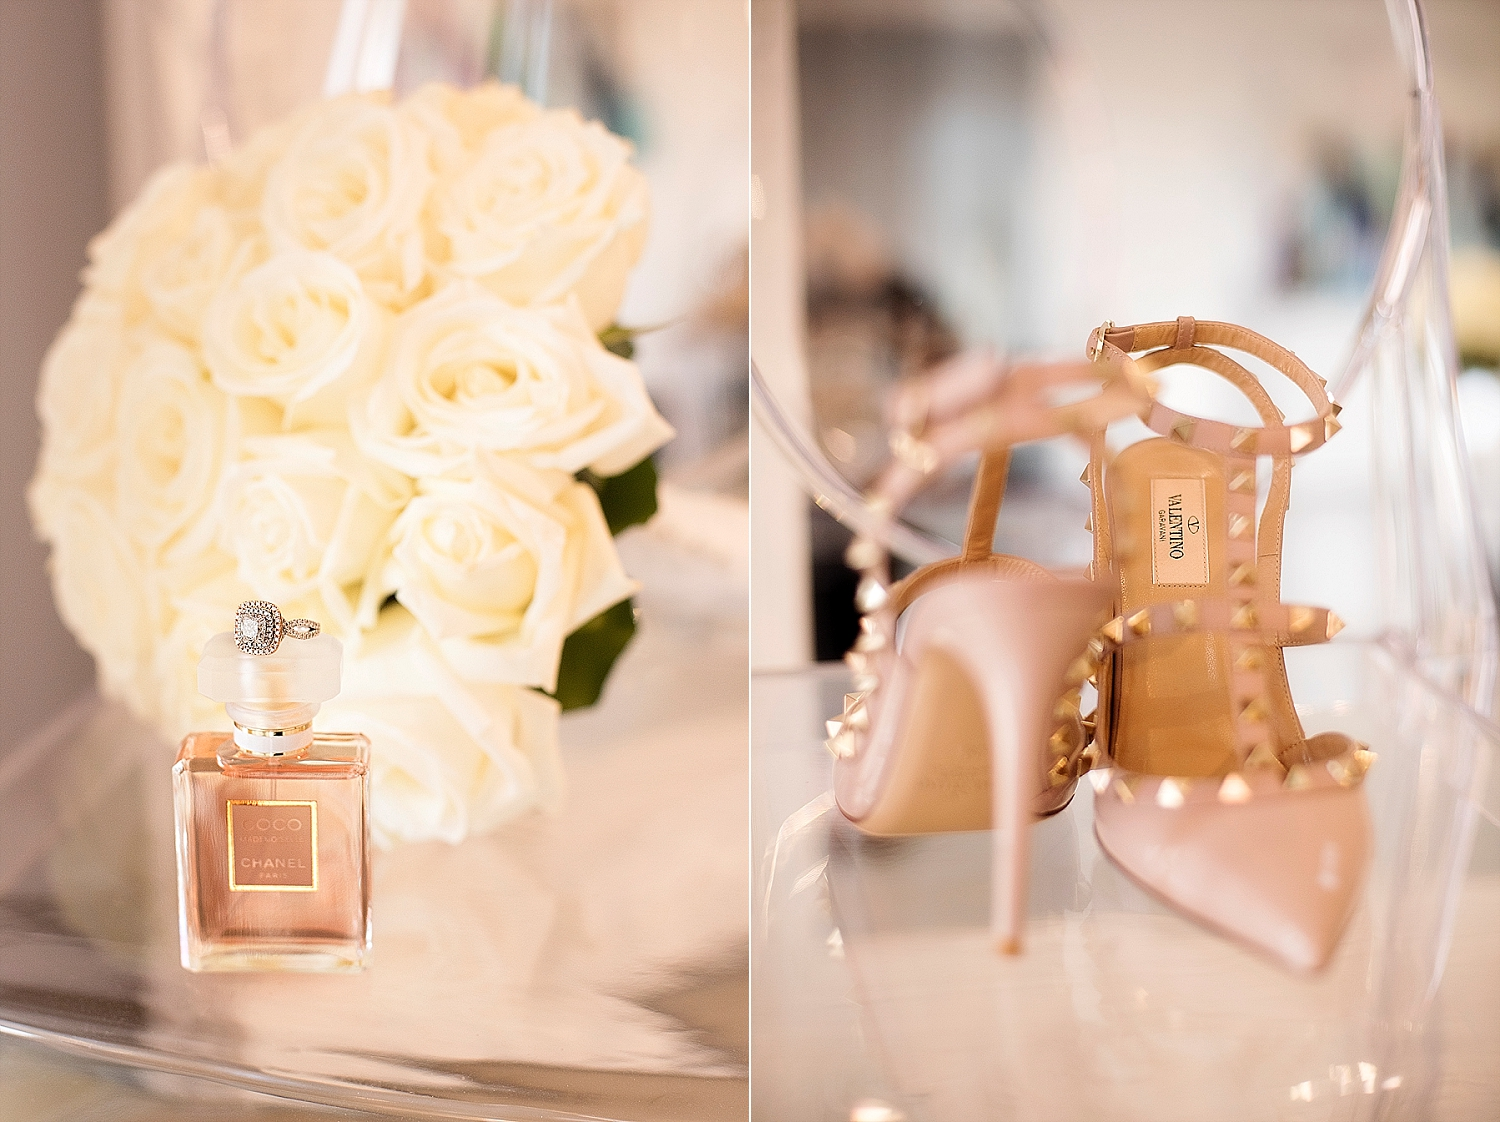 012_coco chanel perfume valentino rock studs state reception centre wedding perth.jpg